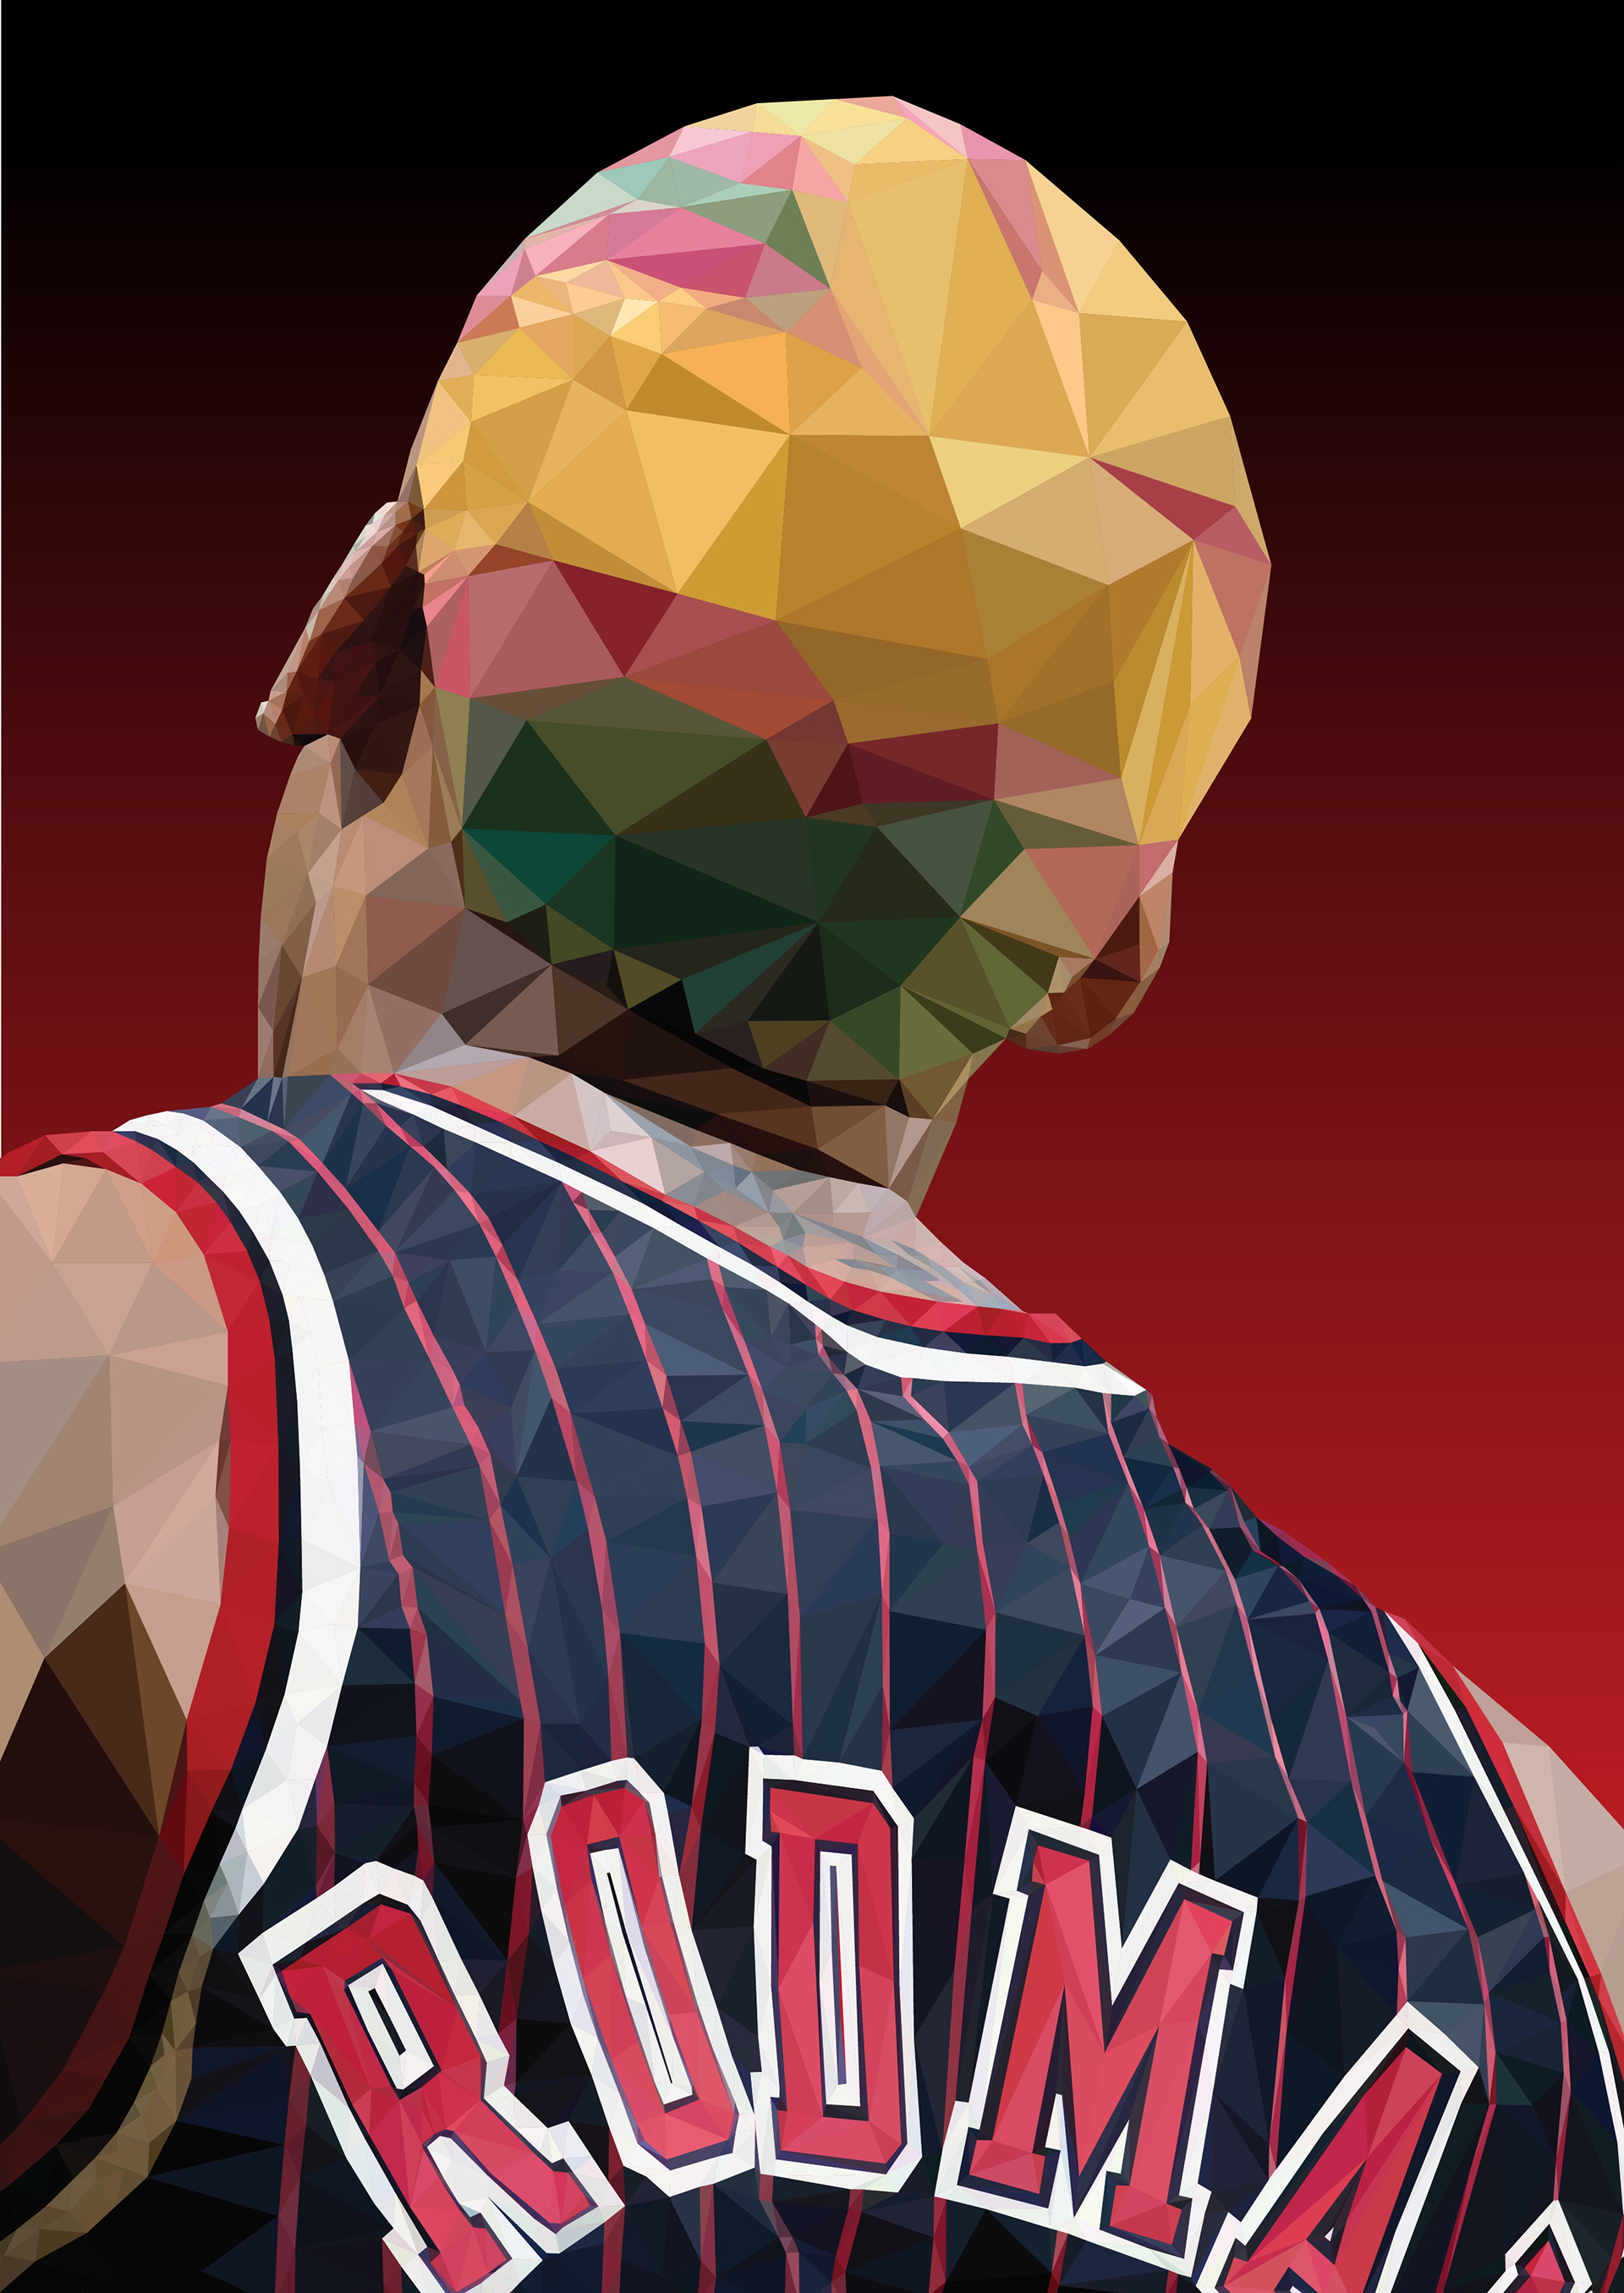 Dennis Rodman Geometric As I Wanna Be Illustration